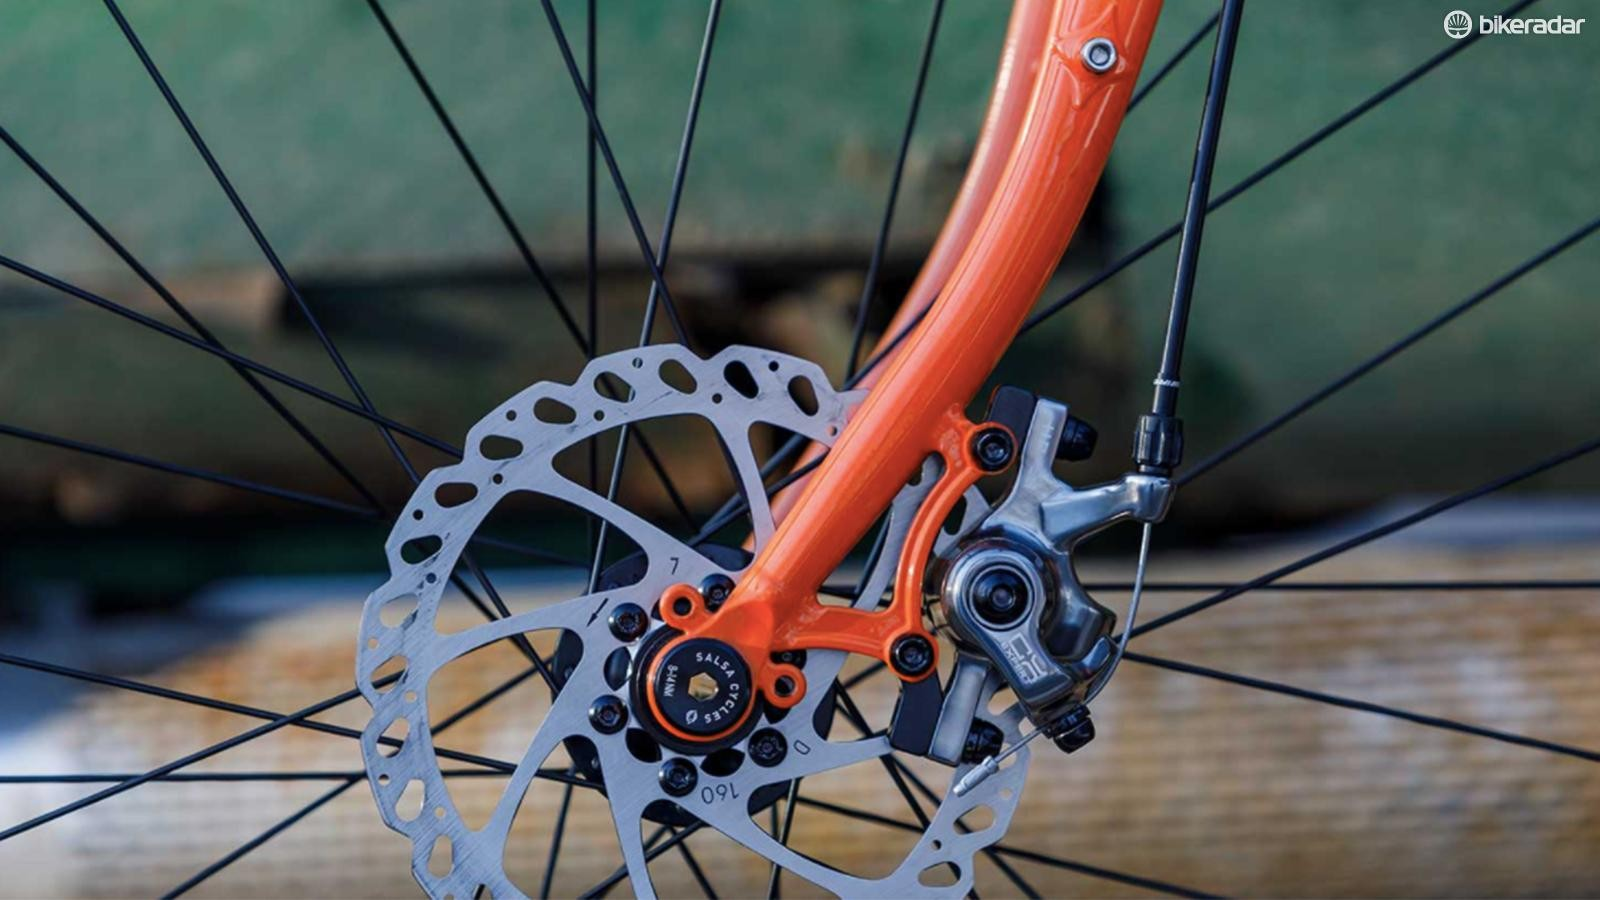 The Gorilla Monsoon uses the 15x100mm front thru-axle standard found on pre-boost mountain bikes